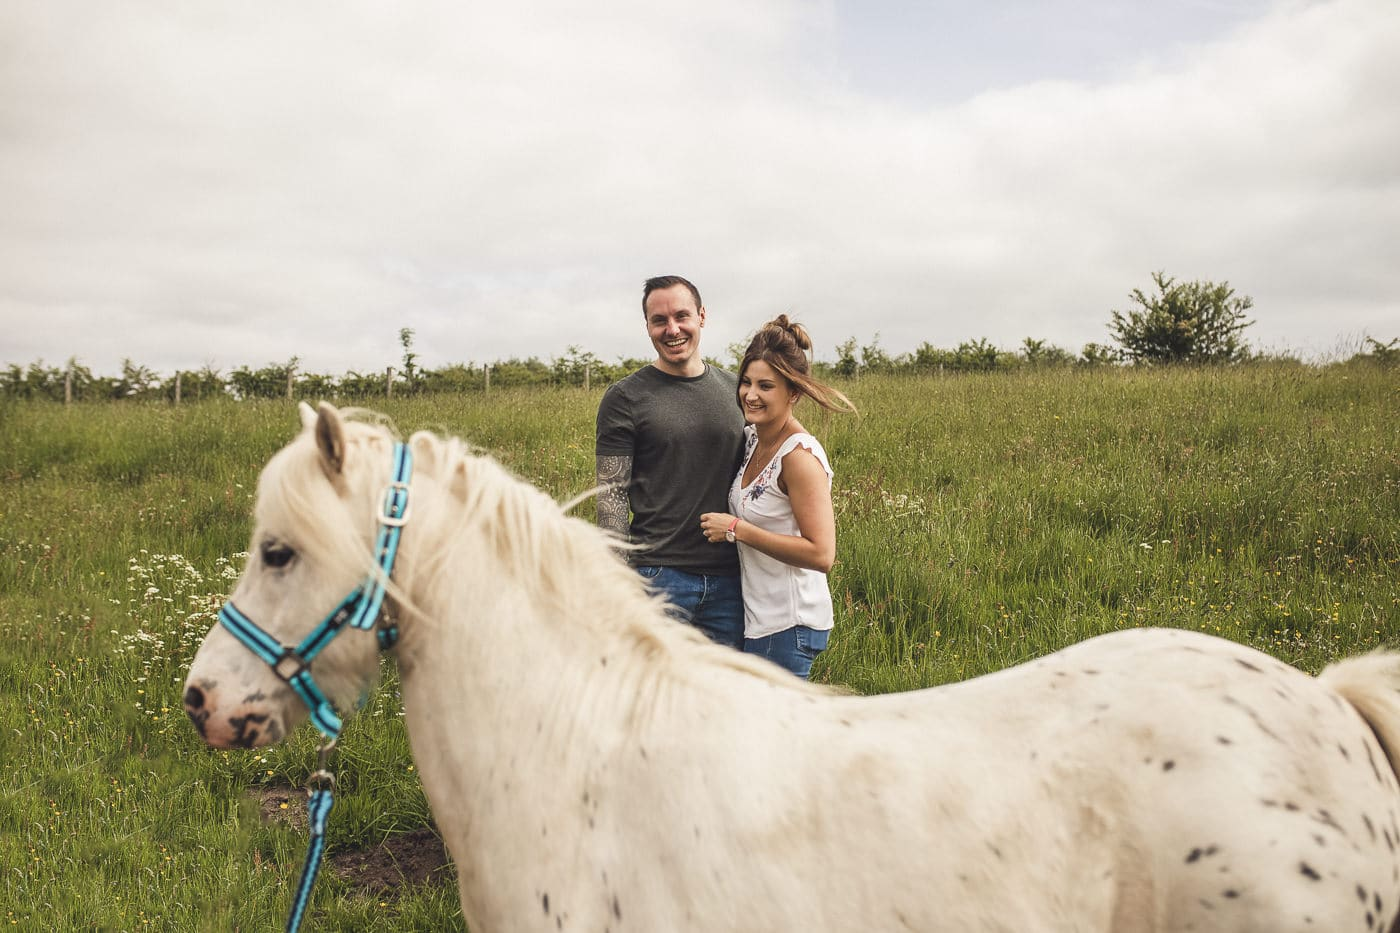 couple photoshoot photo photobombed by a horse